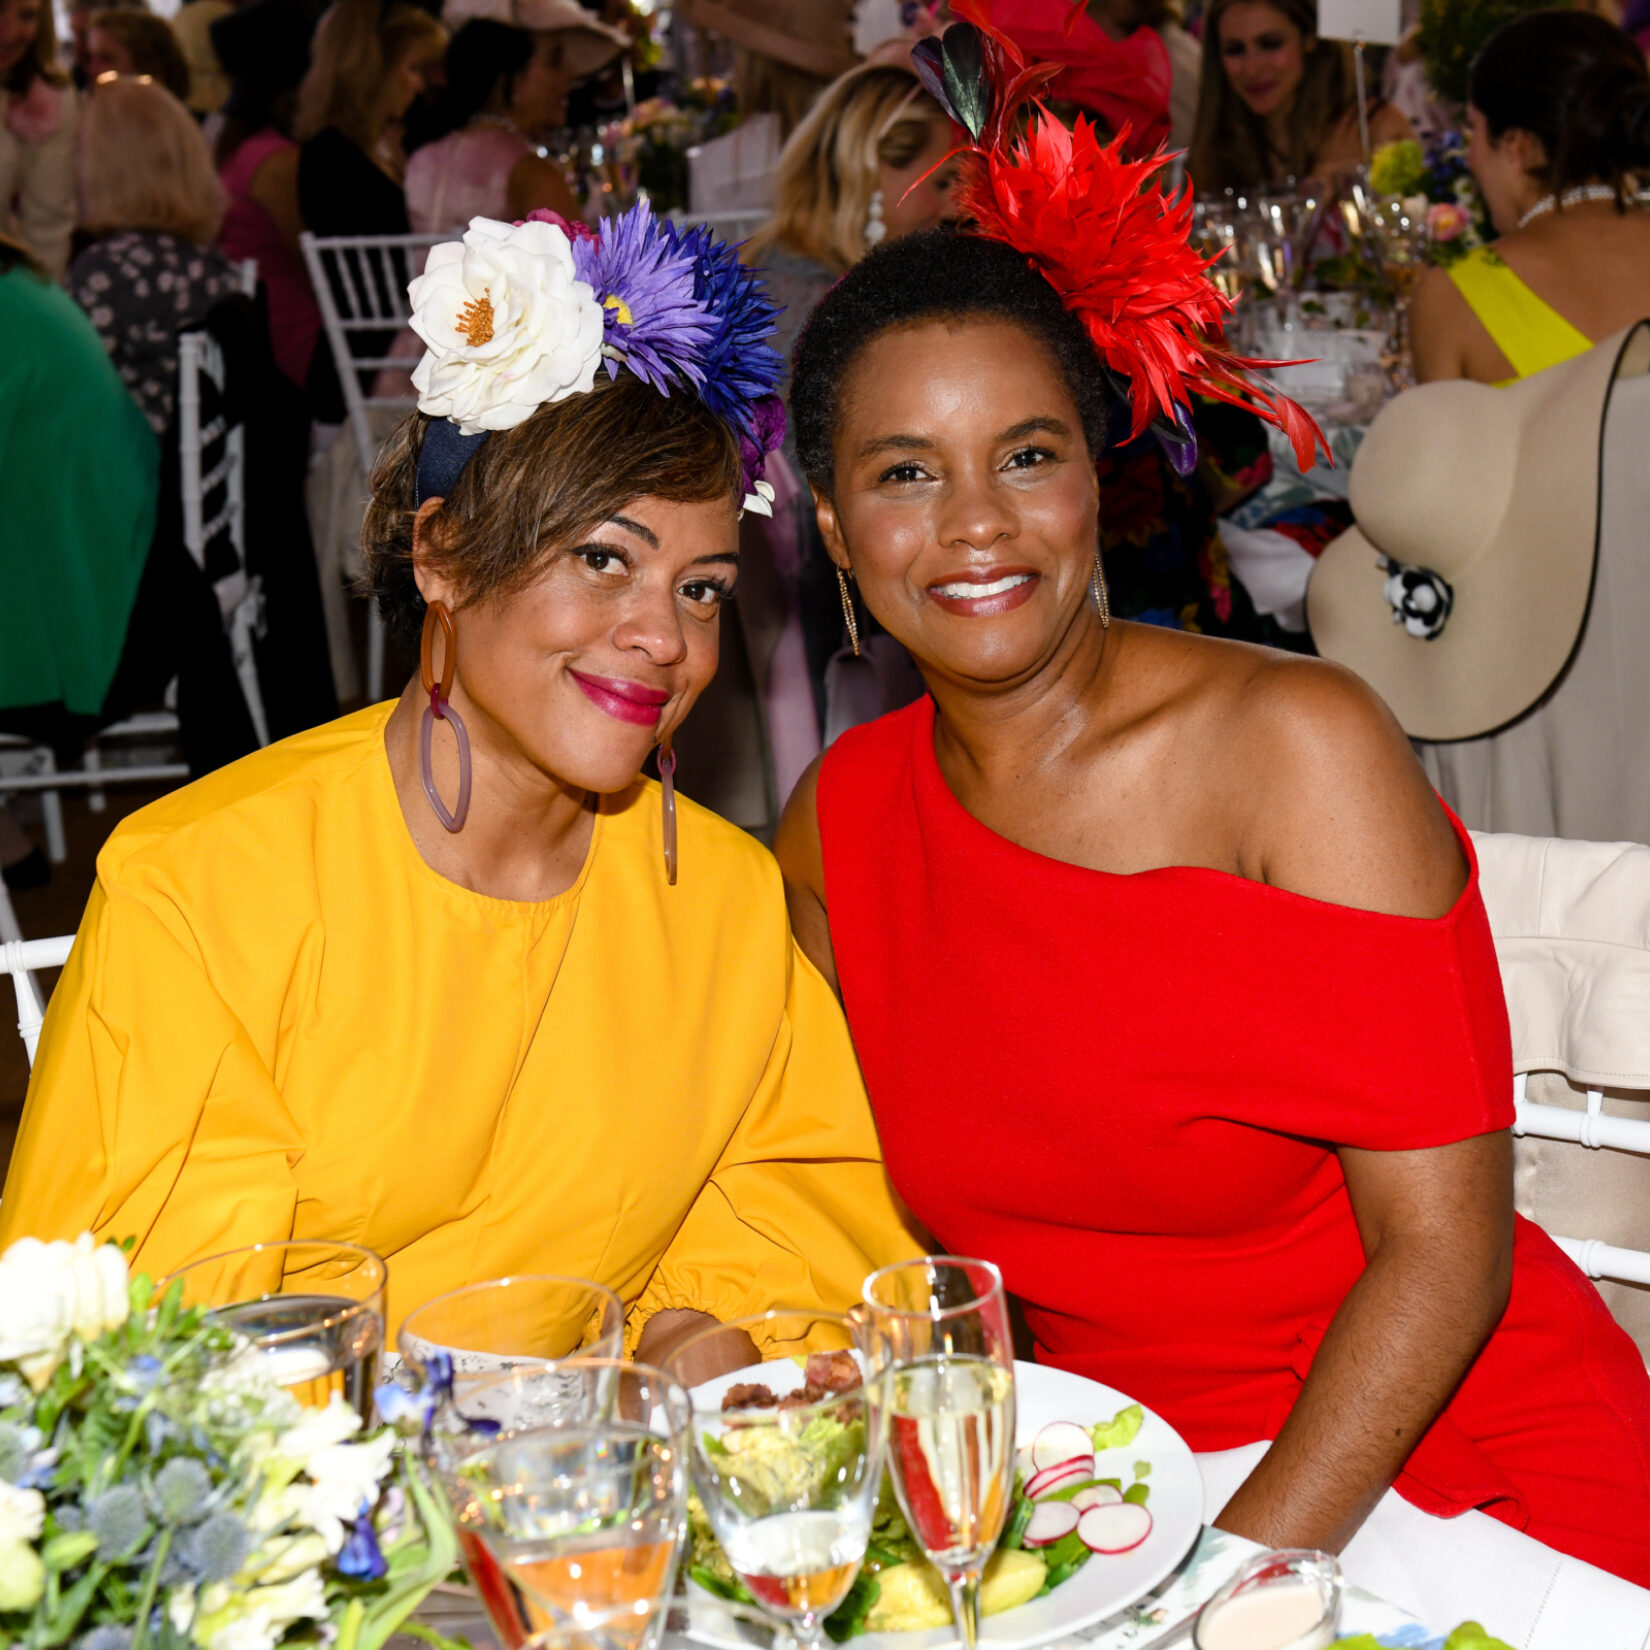 Two women sporting flowered hats enjoy the luncheon